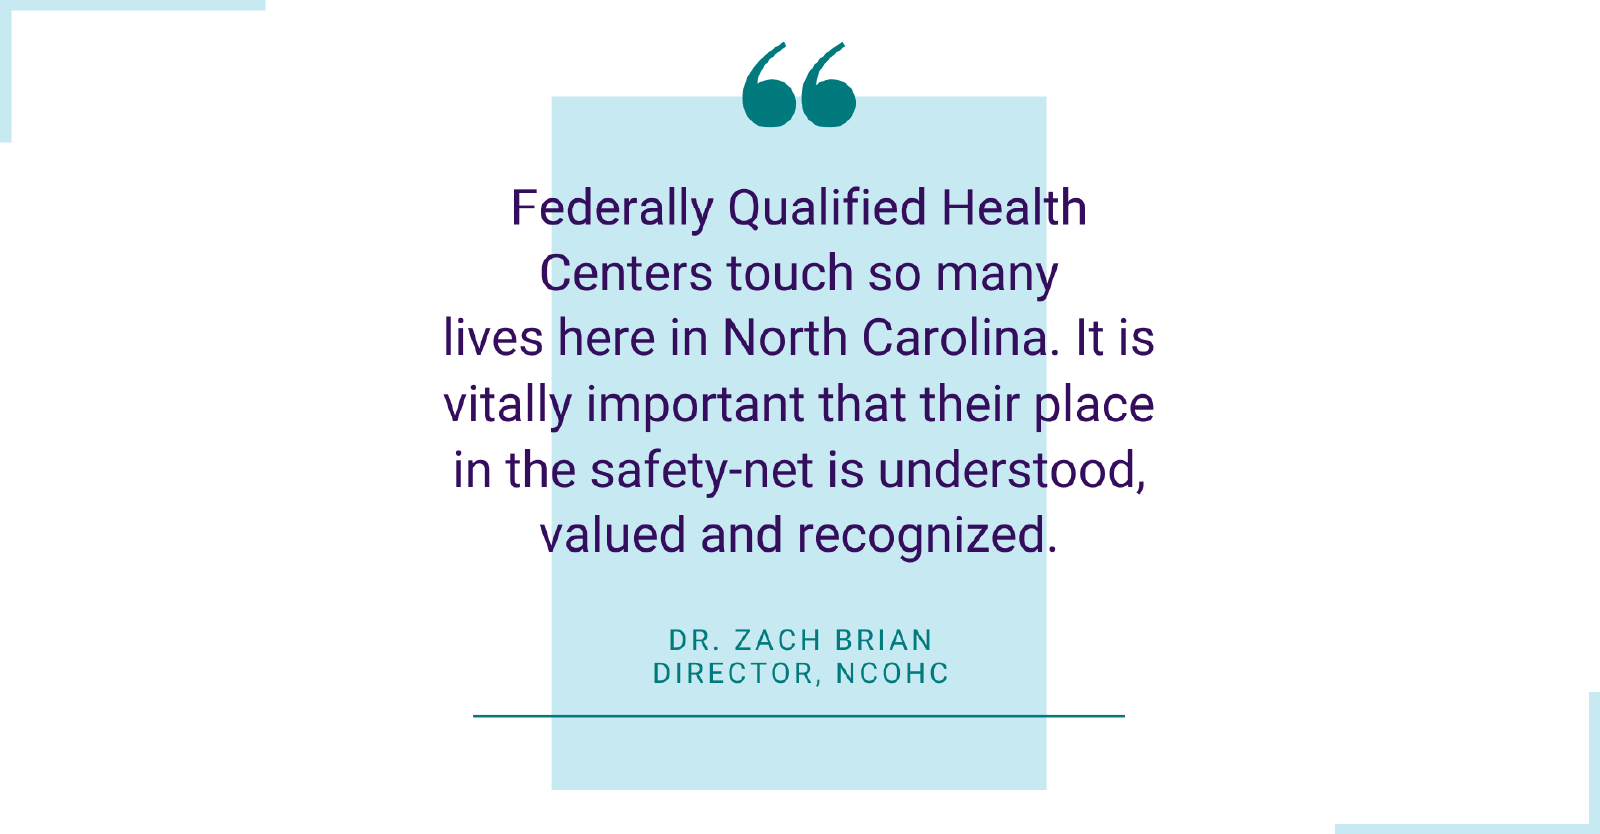 Federally Qualified Health Centers: What Are They and Why Do They Matter?